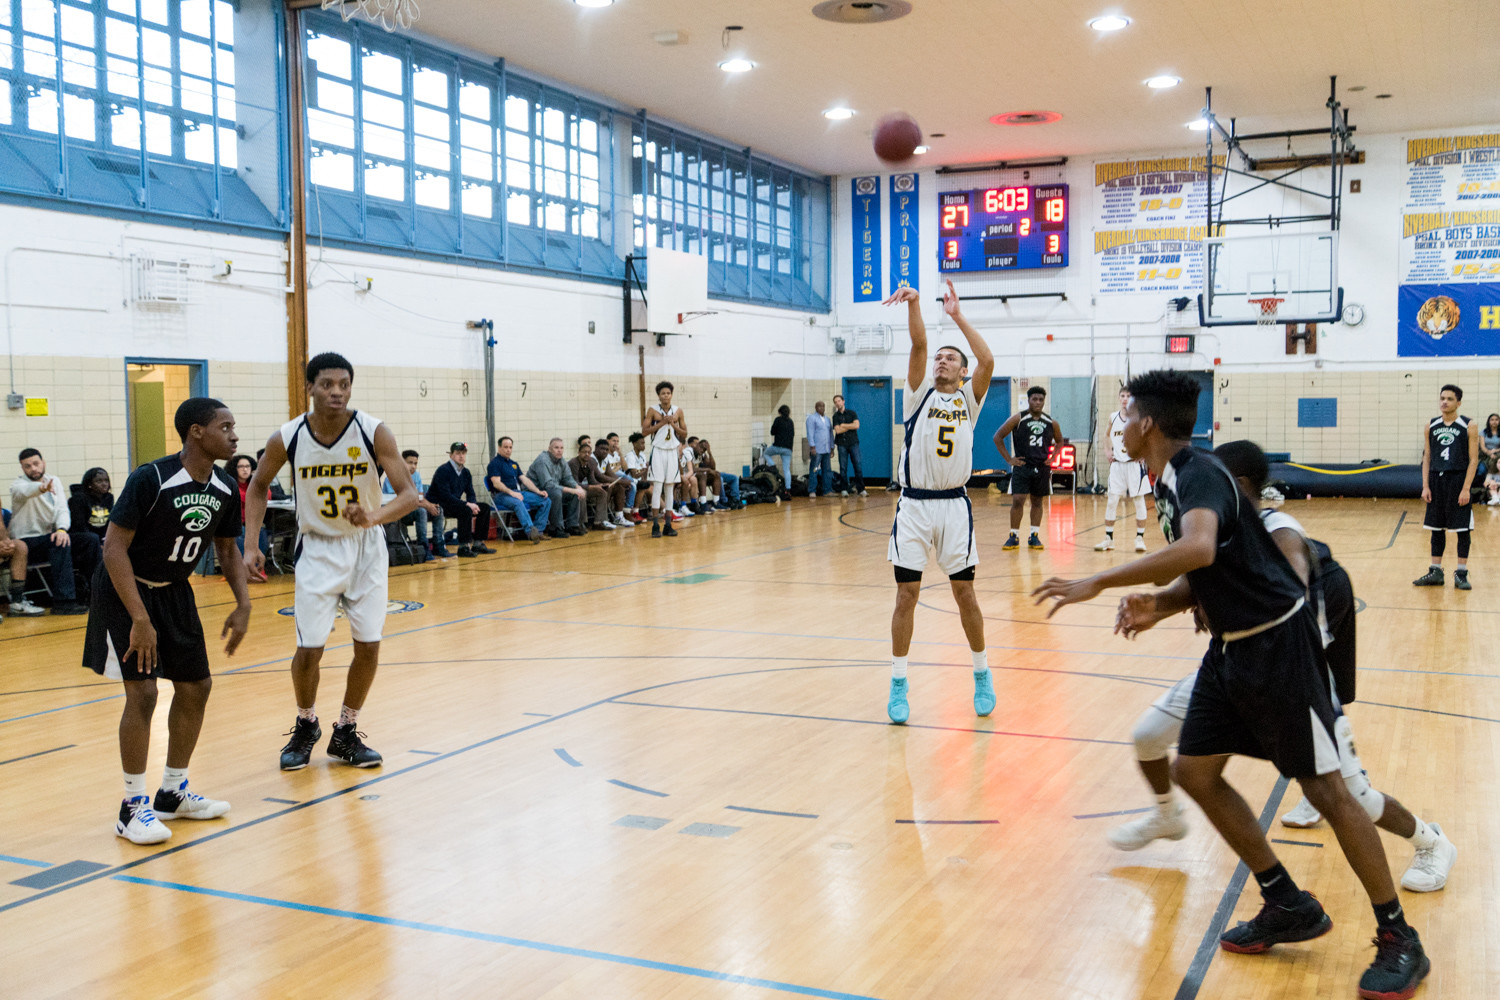 It's been a long road back for Riverdale/Kingsbridge Academy's Jalen Cuello after a heart scare sidelined him most of the season.